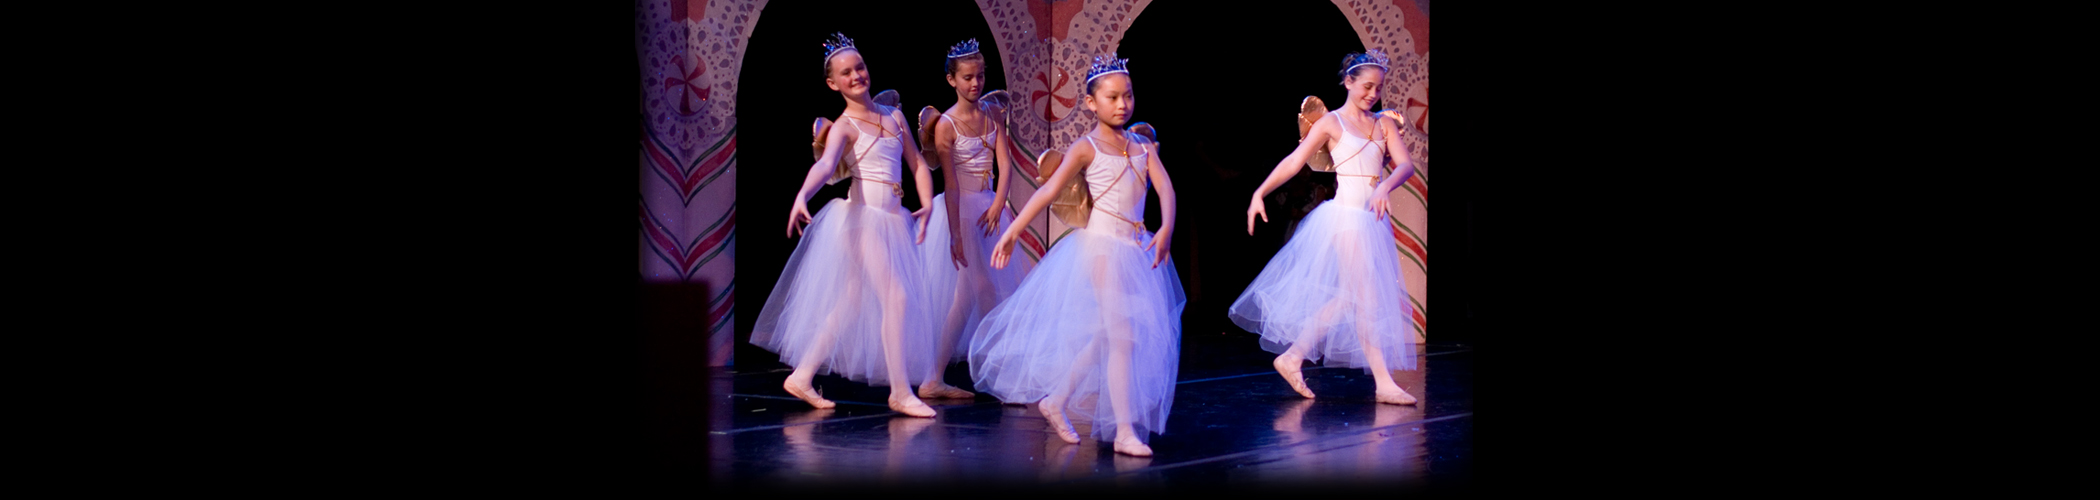 arts summer camps camp for arts dance music theatre